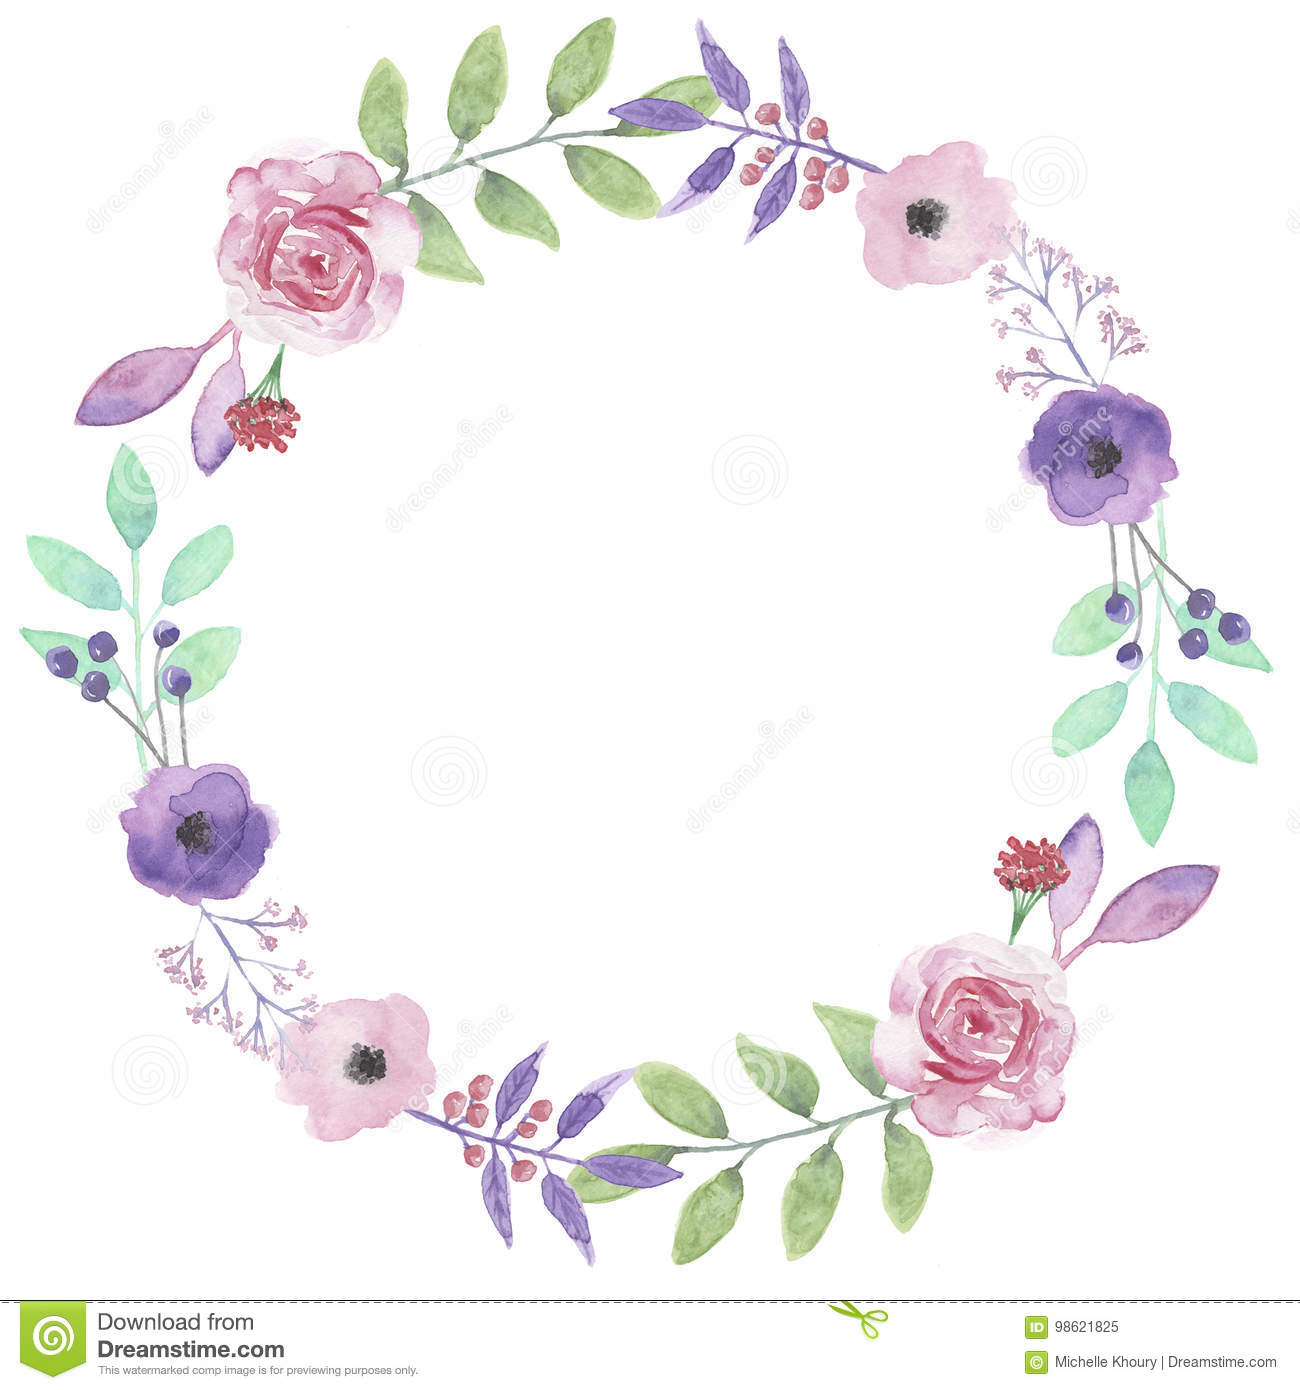 watercolor flower wreath purple rose garland leaf pink roses stock